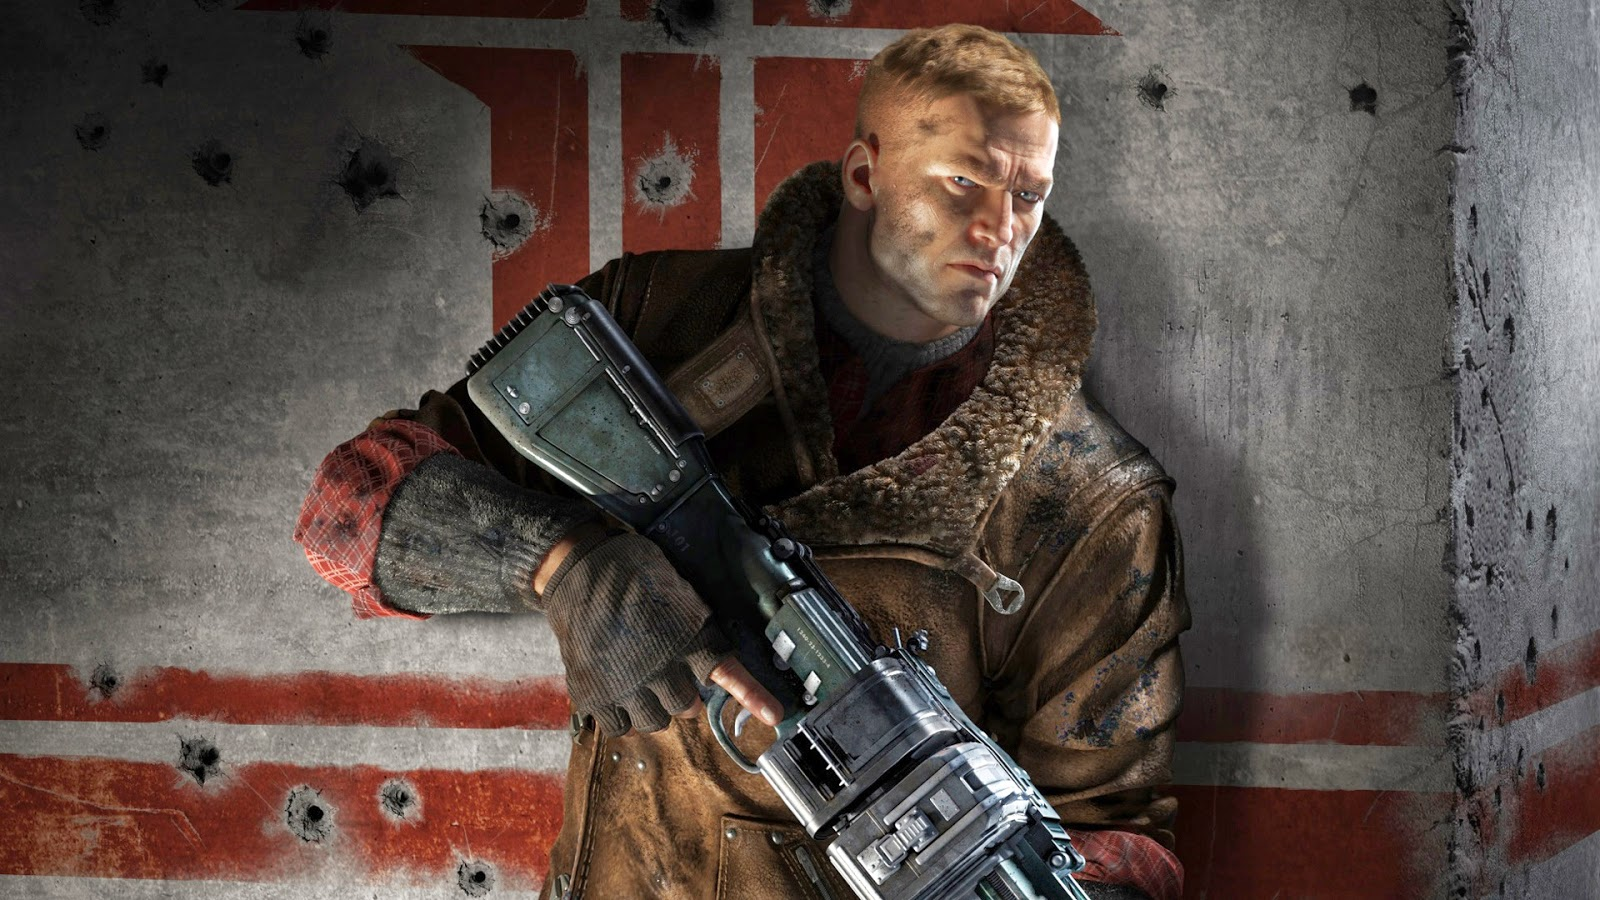 wolfenstein the new order game hd wallpaper covers heat